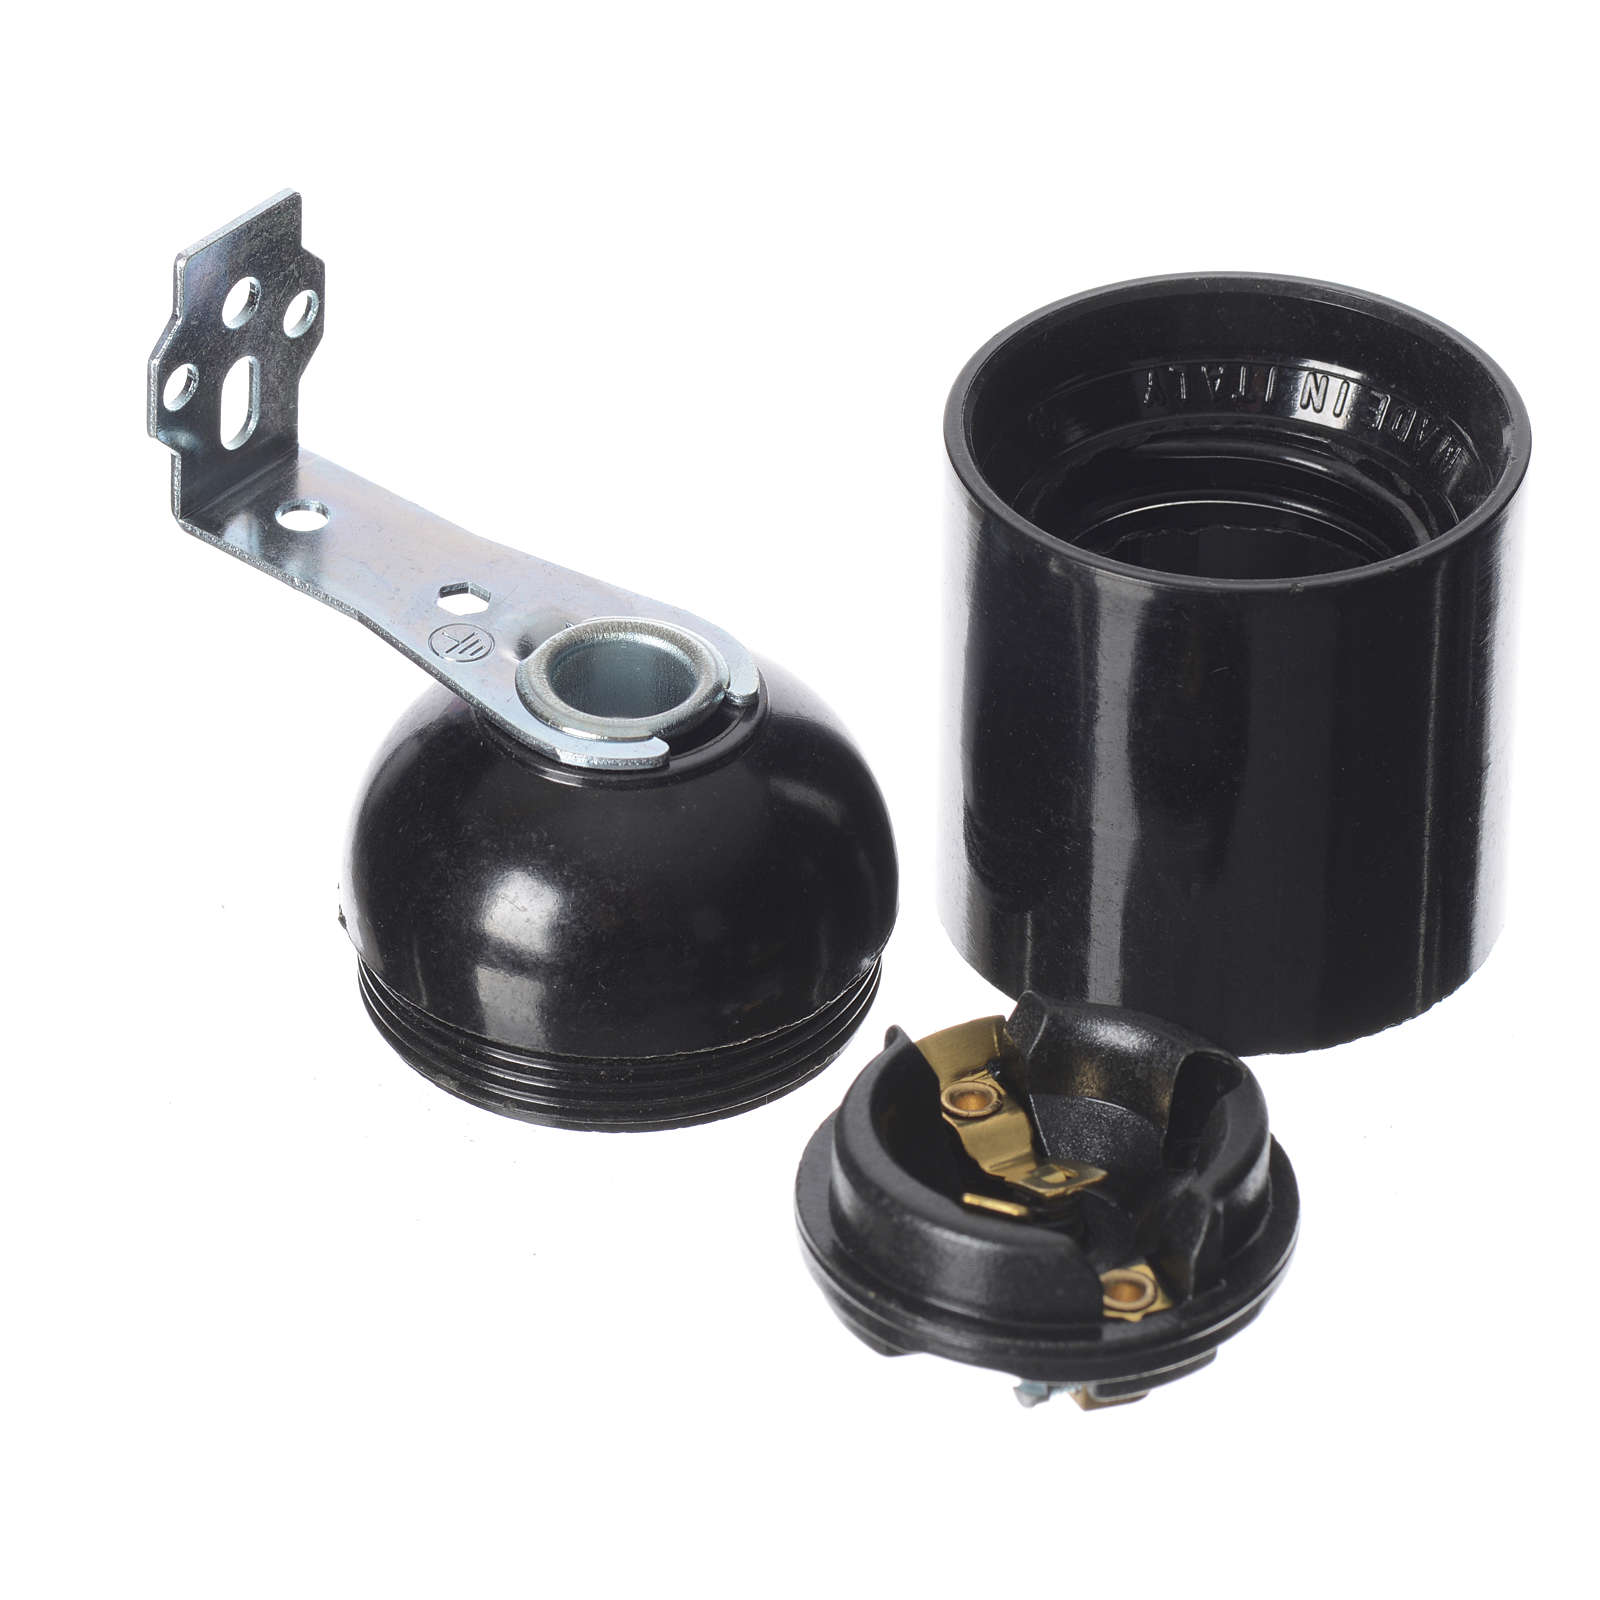 Lamp holder E27 with right angle bracket and fixing holes 4